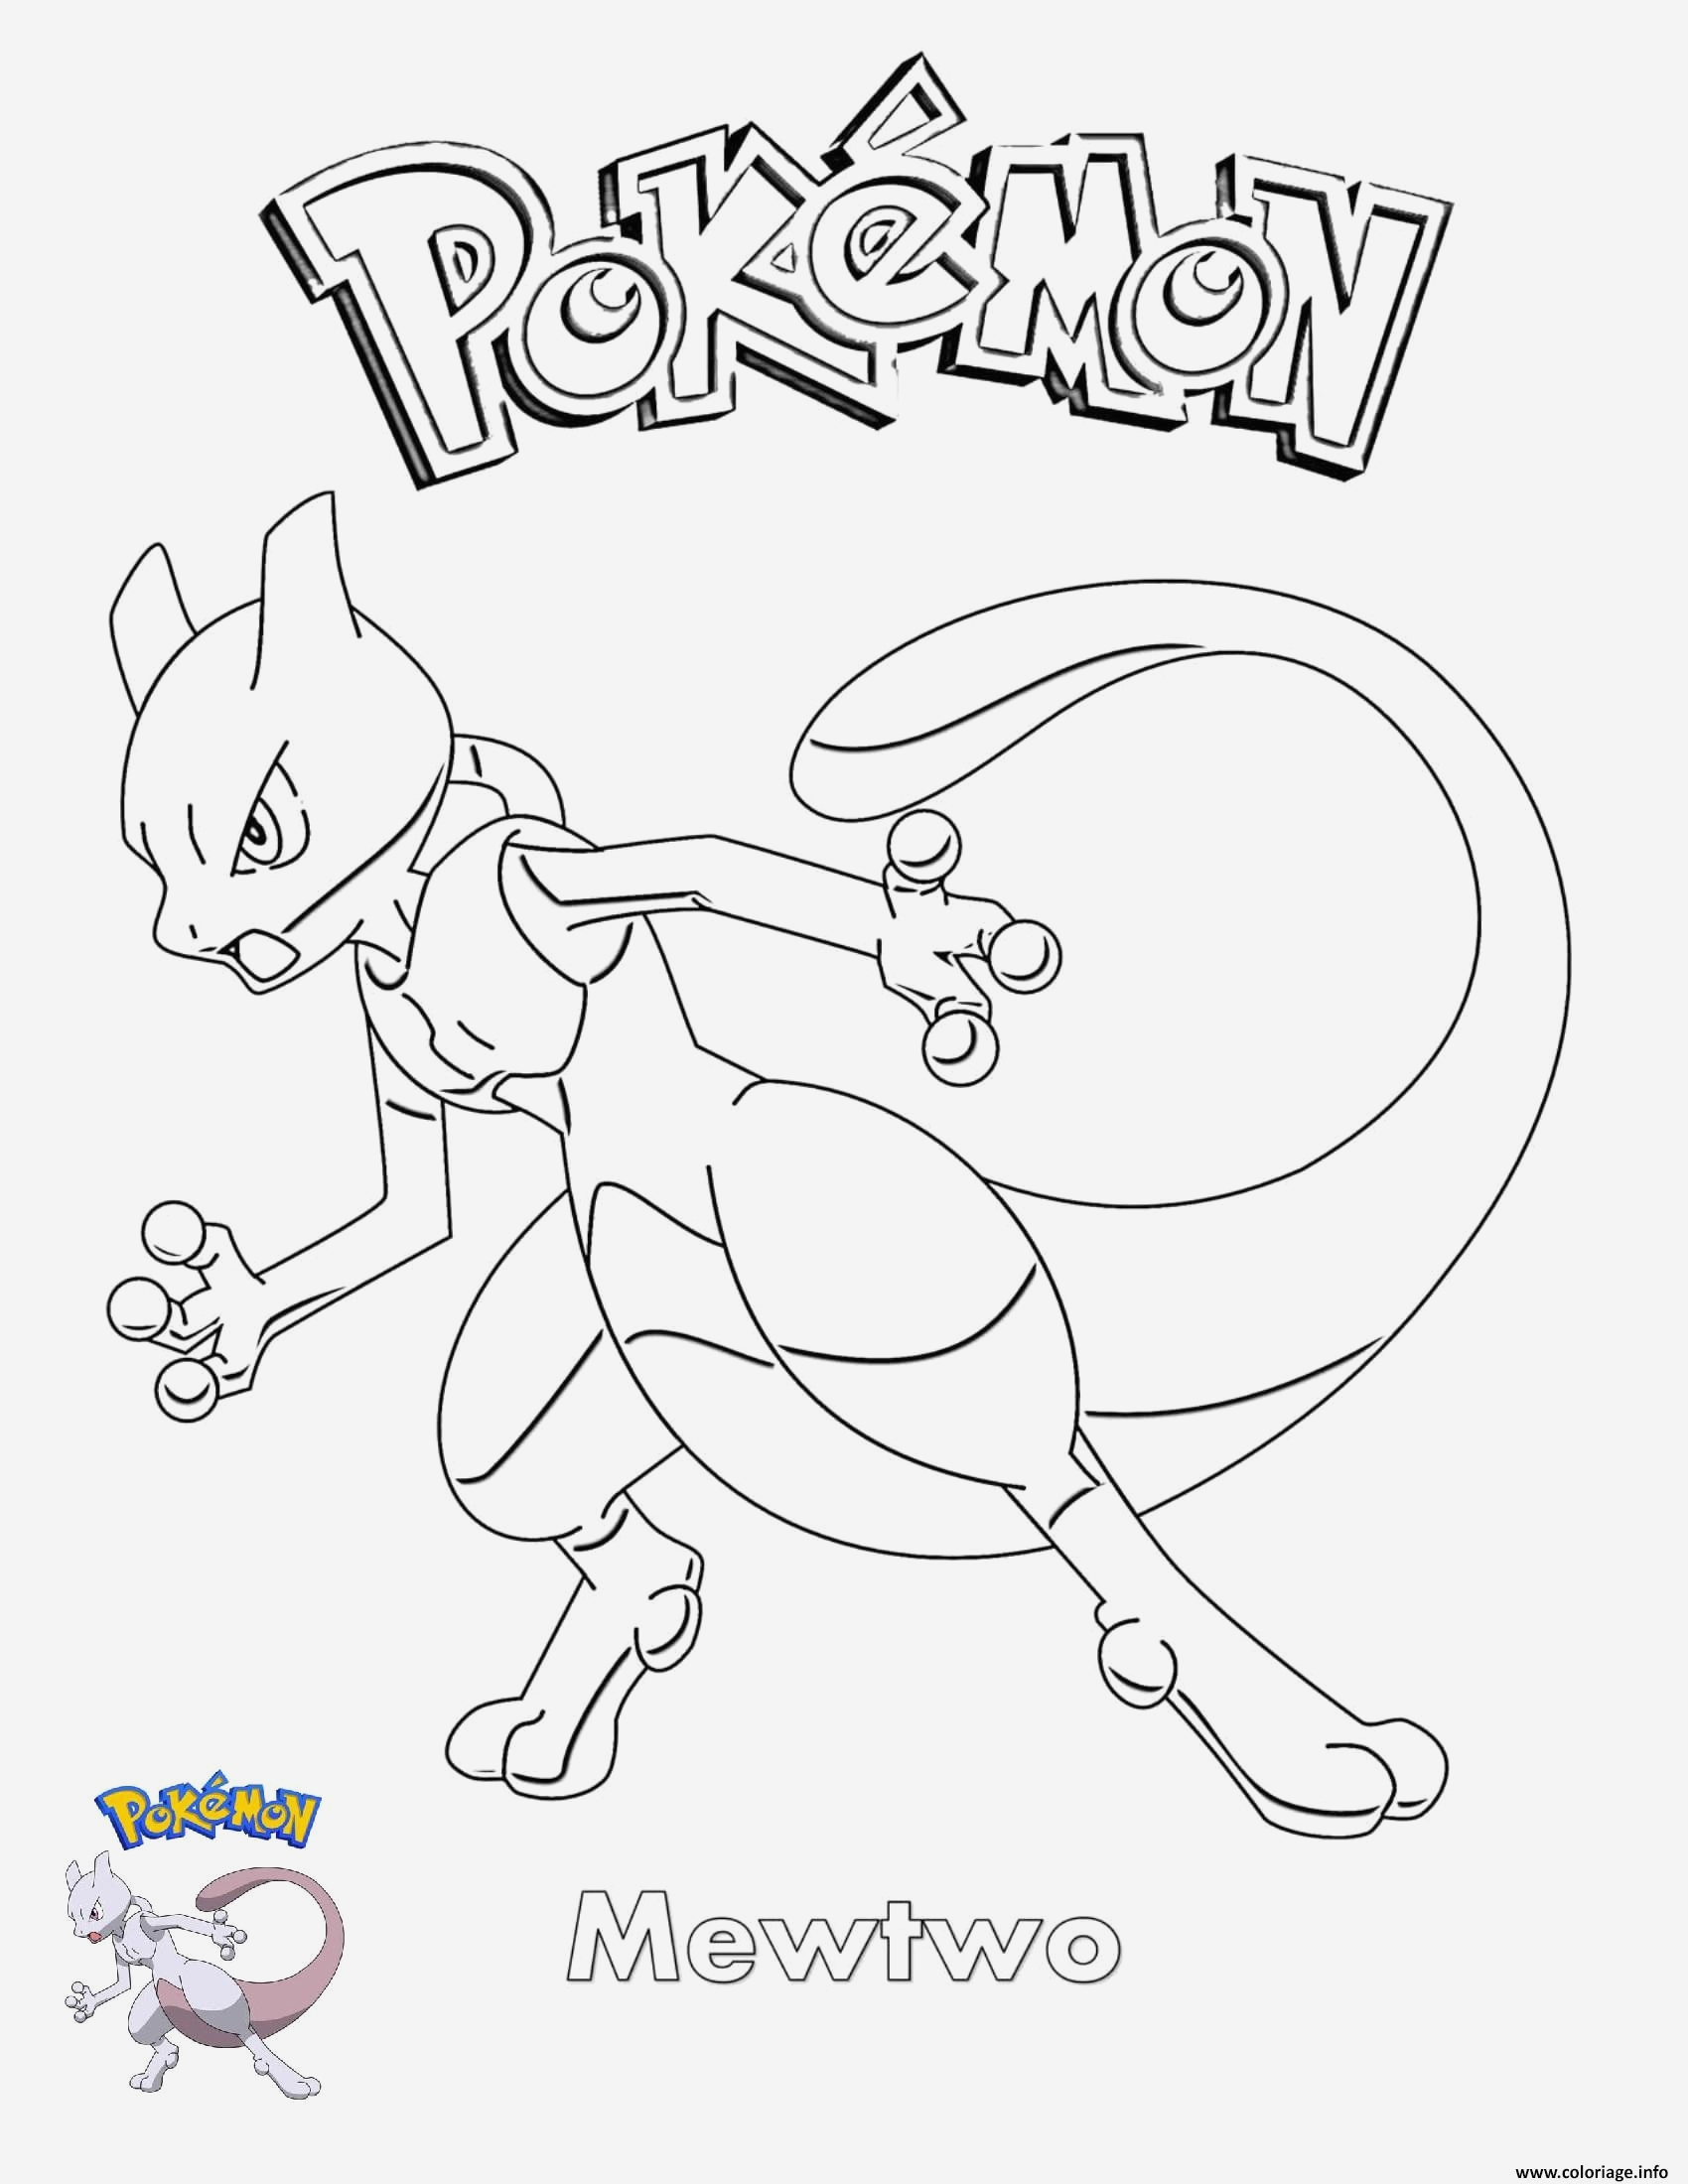 Coloriage à Imprimer Pokemon Legendaire Awesome Hd Wallpapers Coloriage A Imprimer Pokemon Mewtwo Sweet Love Of Coloriage à Imprimer Pokemon Legendaire